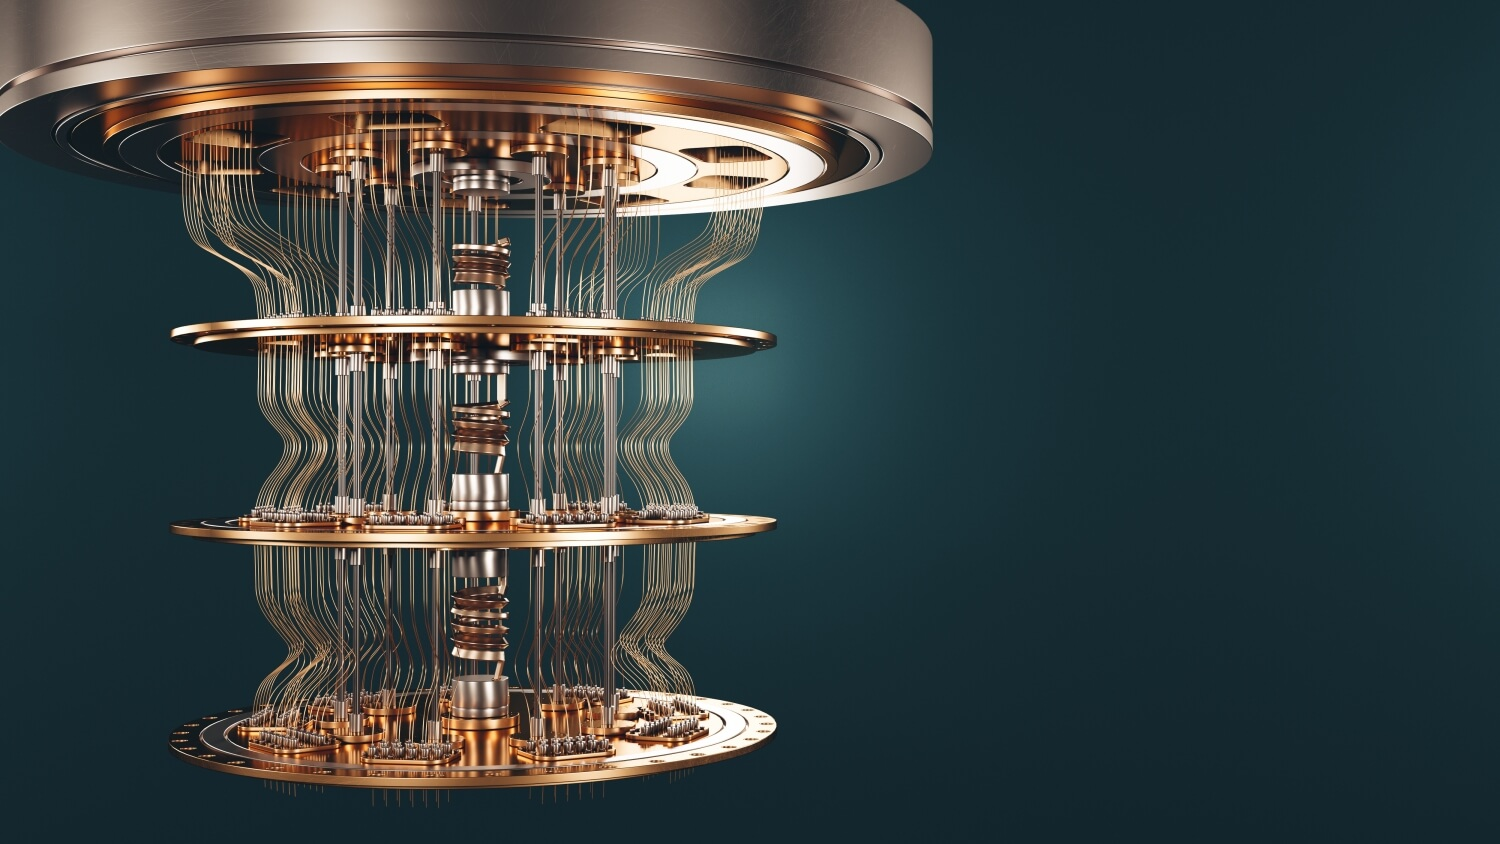 Honeywell lays claim to the fastest quantum computer in the world